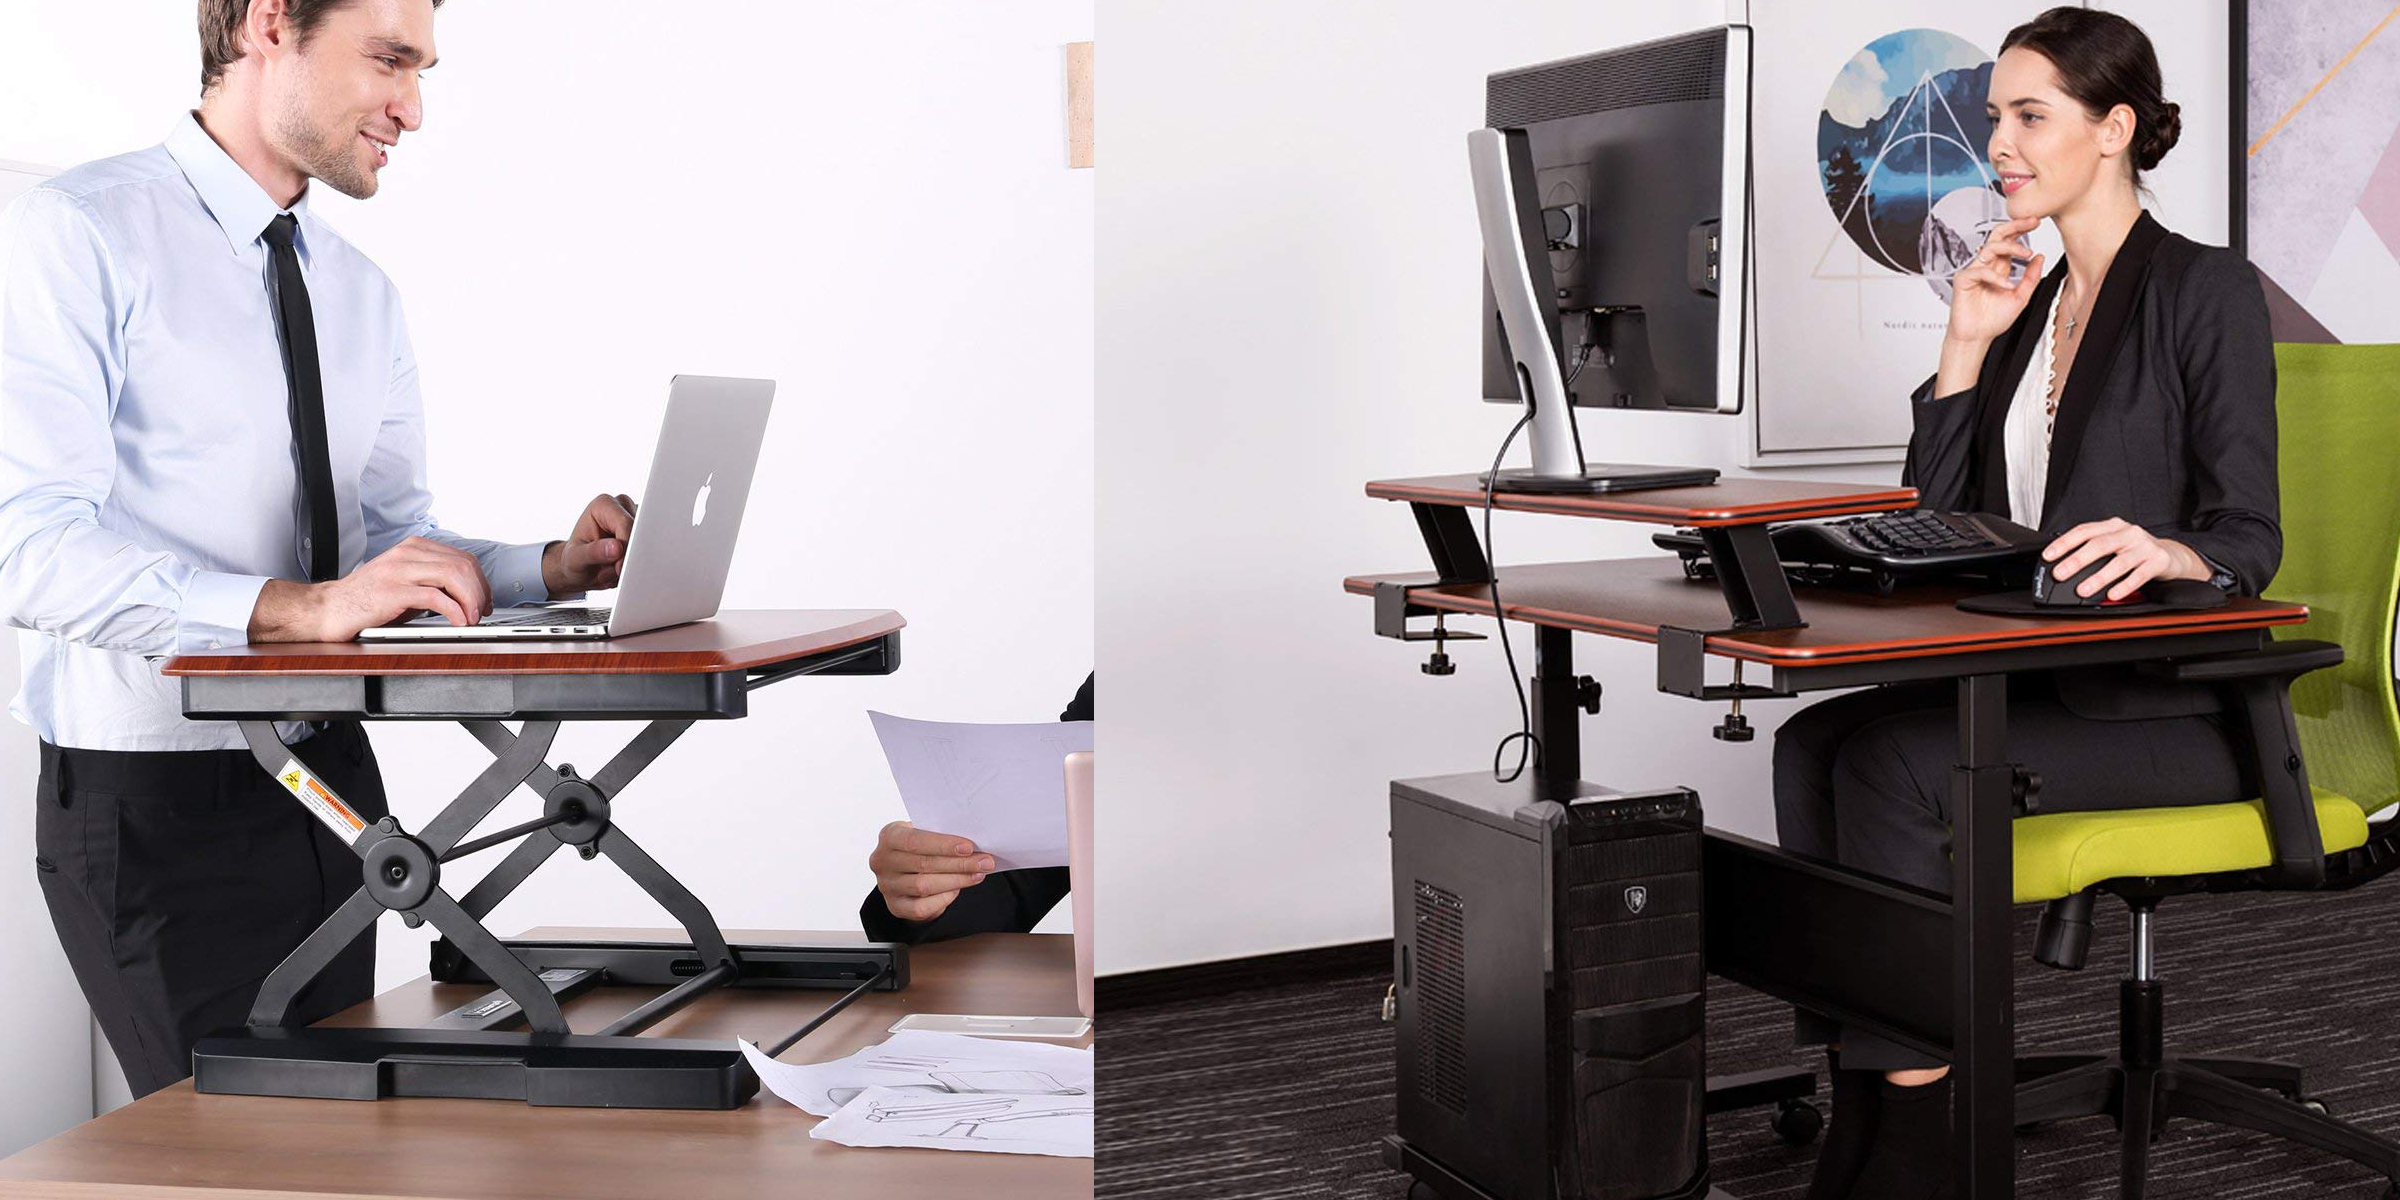 Amazon 1 Day Office Sale From $21.50: Standing Desk Converter $147, More